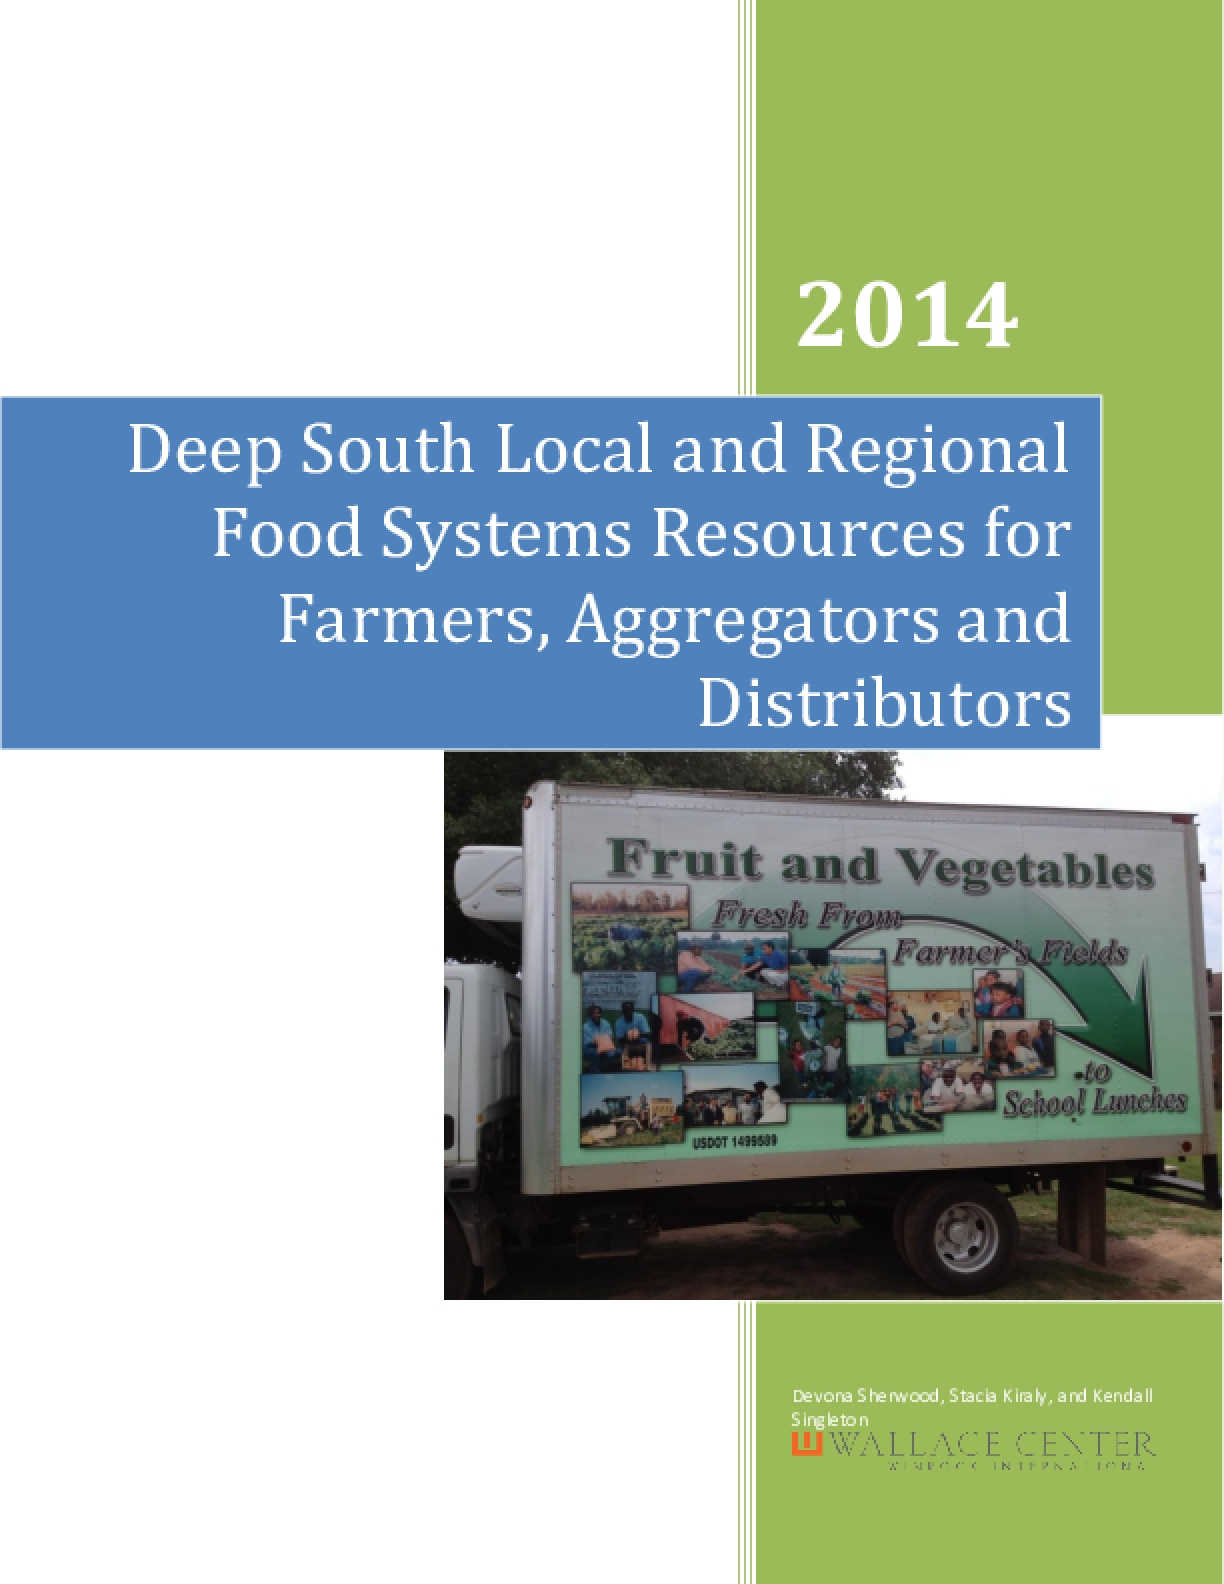 Deep South Local and Regional Food Systems Resources for Farmers, Aggregators and Distributors